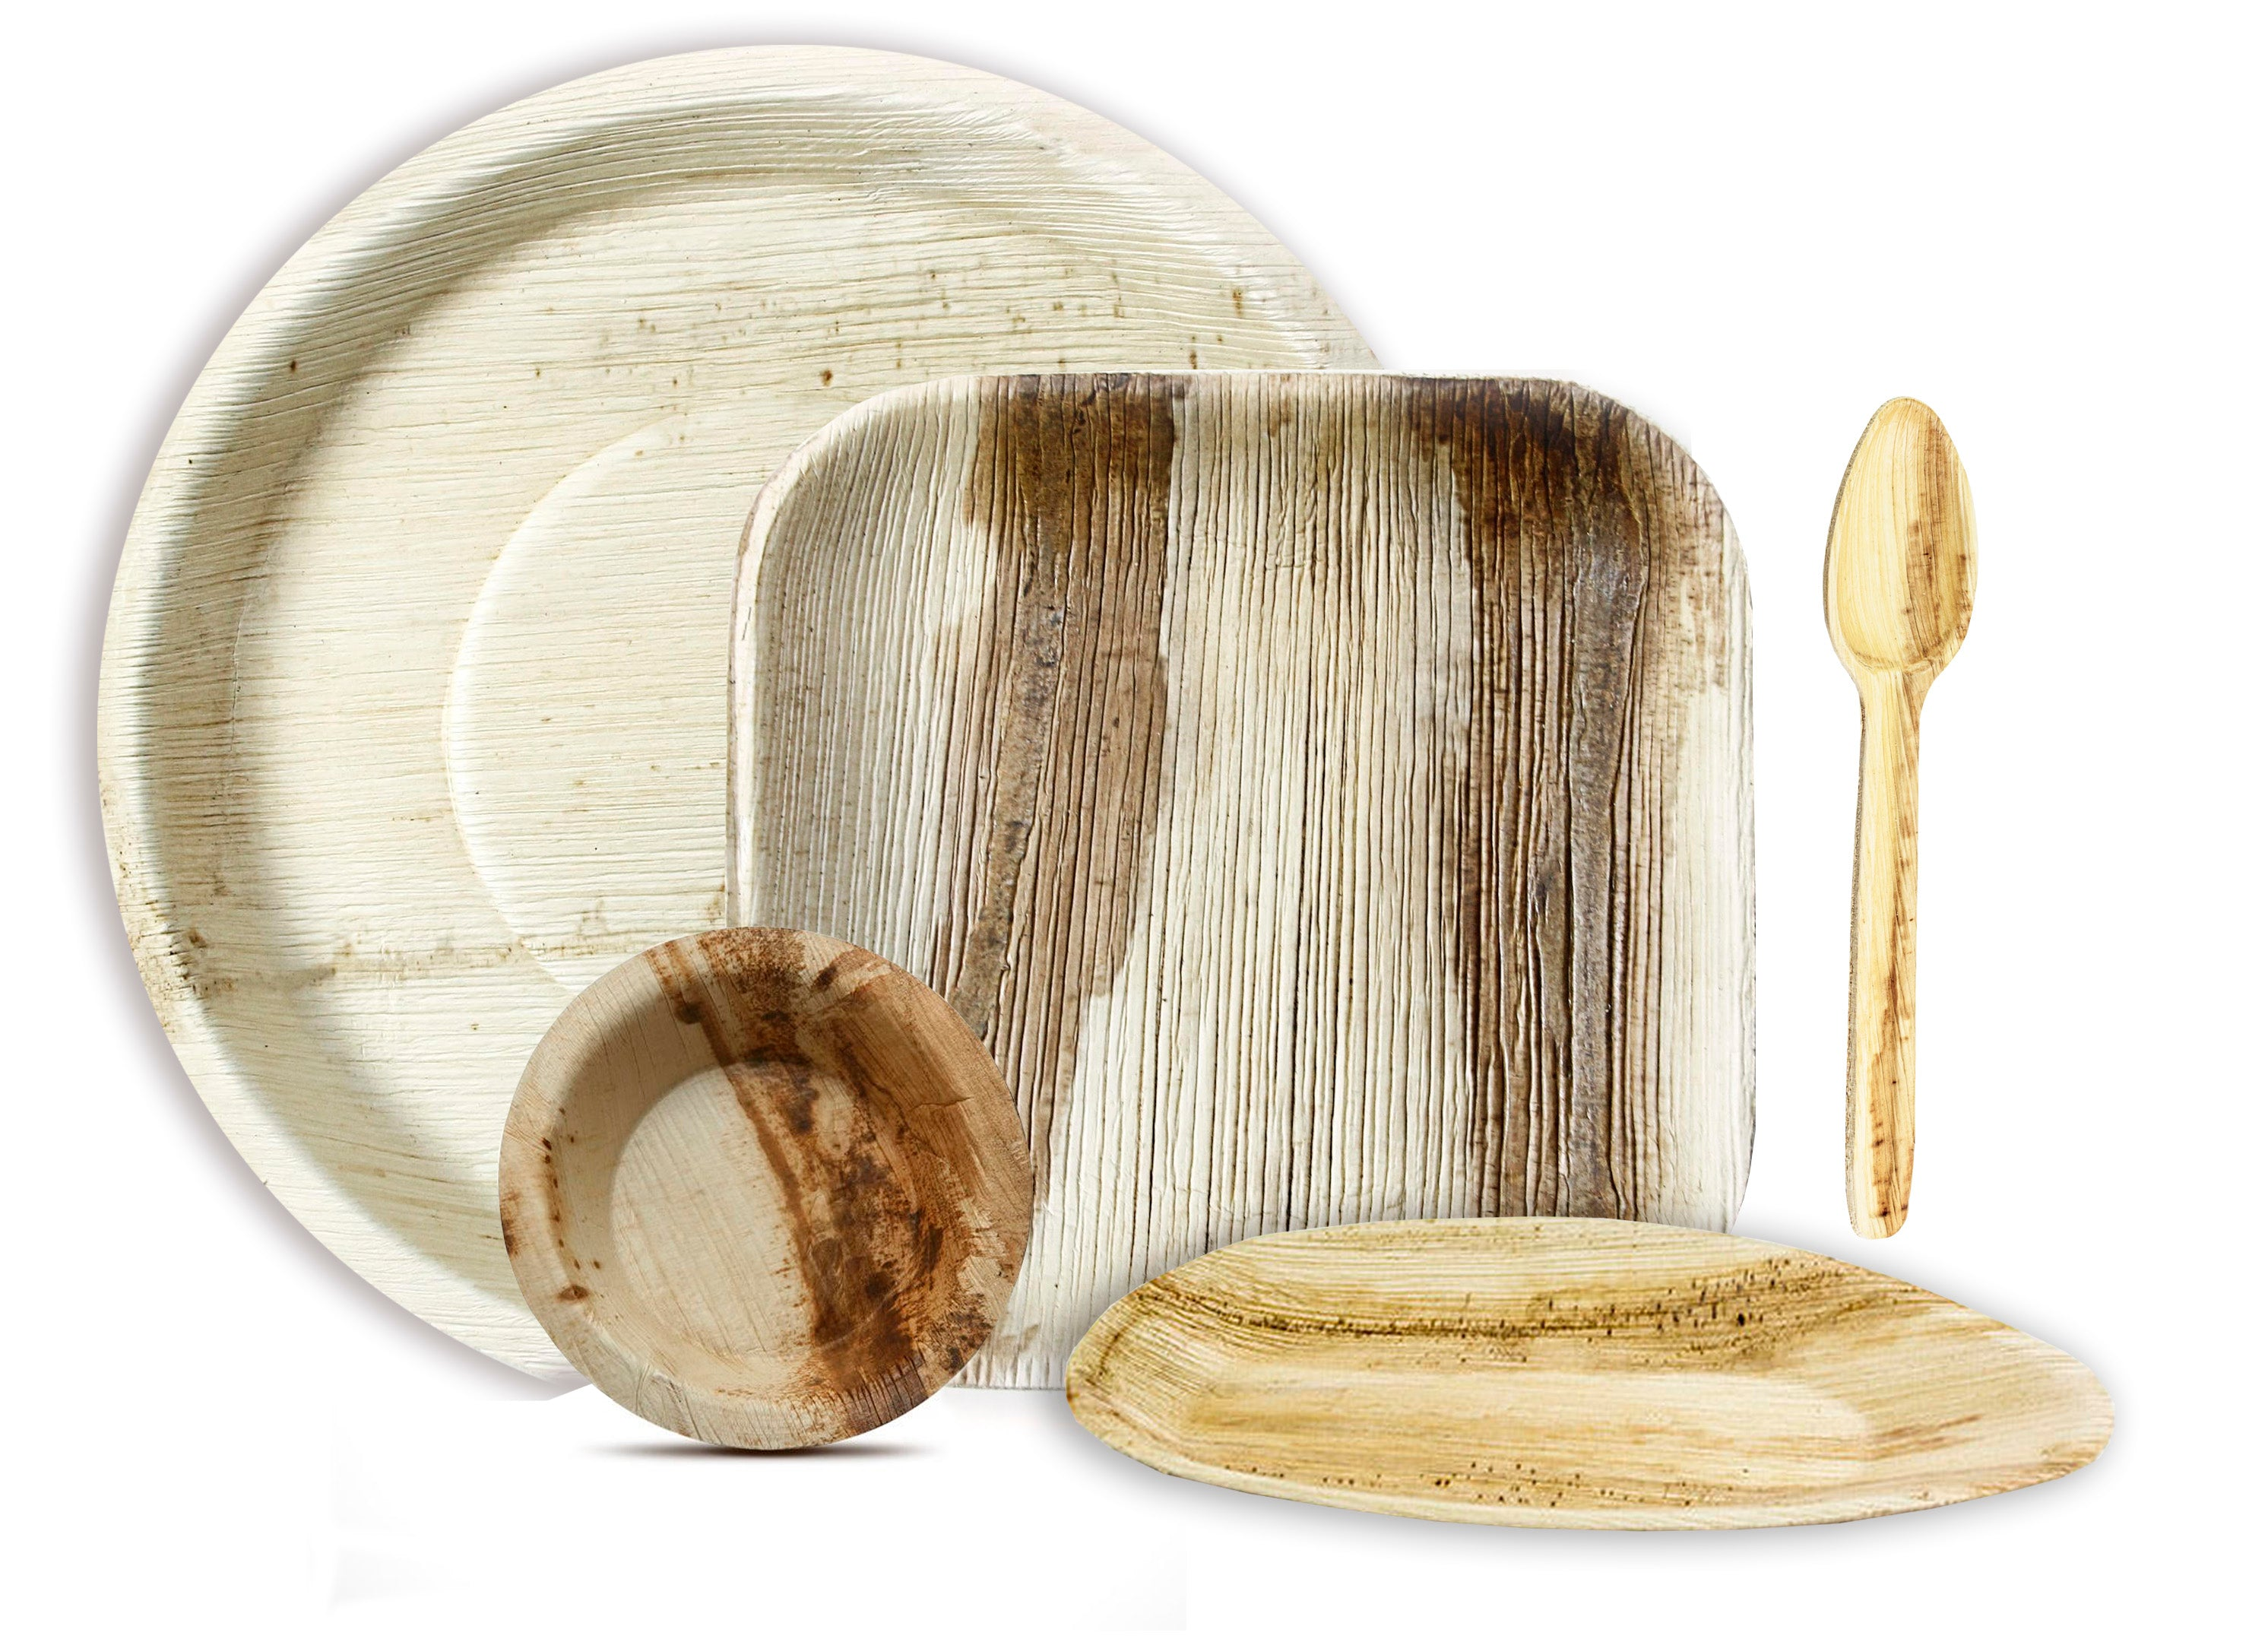 Combo Set of Areca Palm leaf Plate and bowl for 10 people .